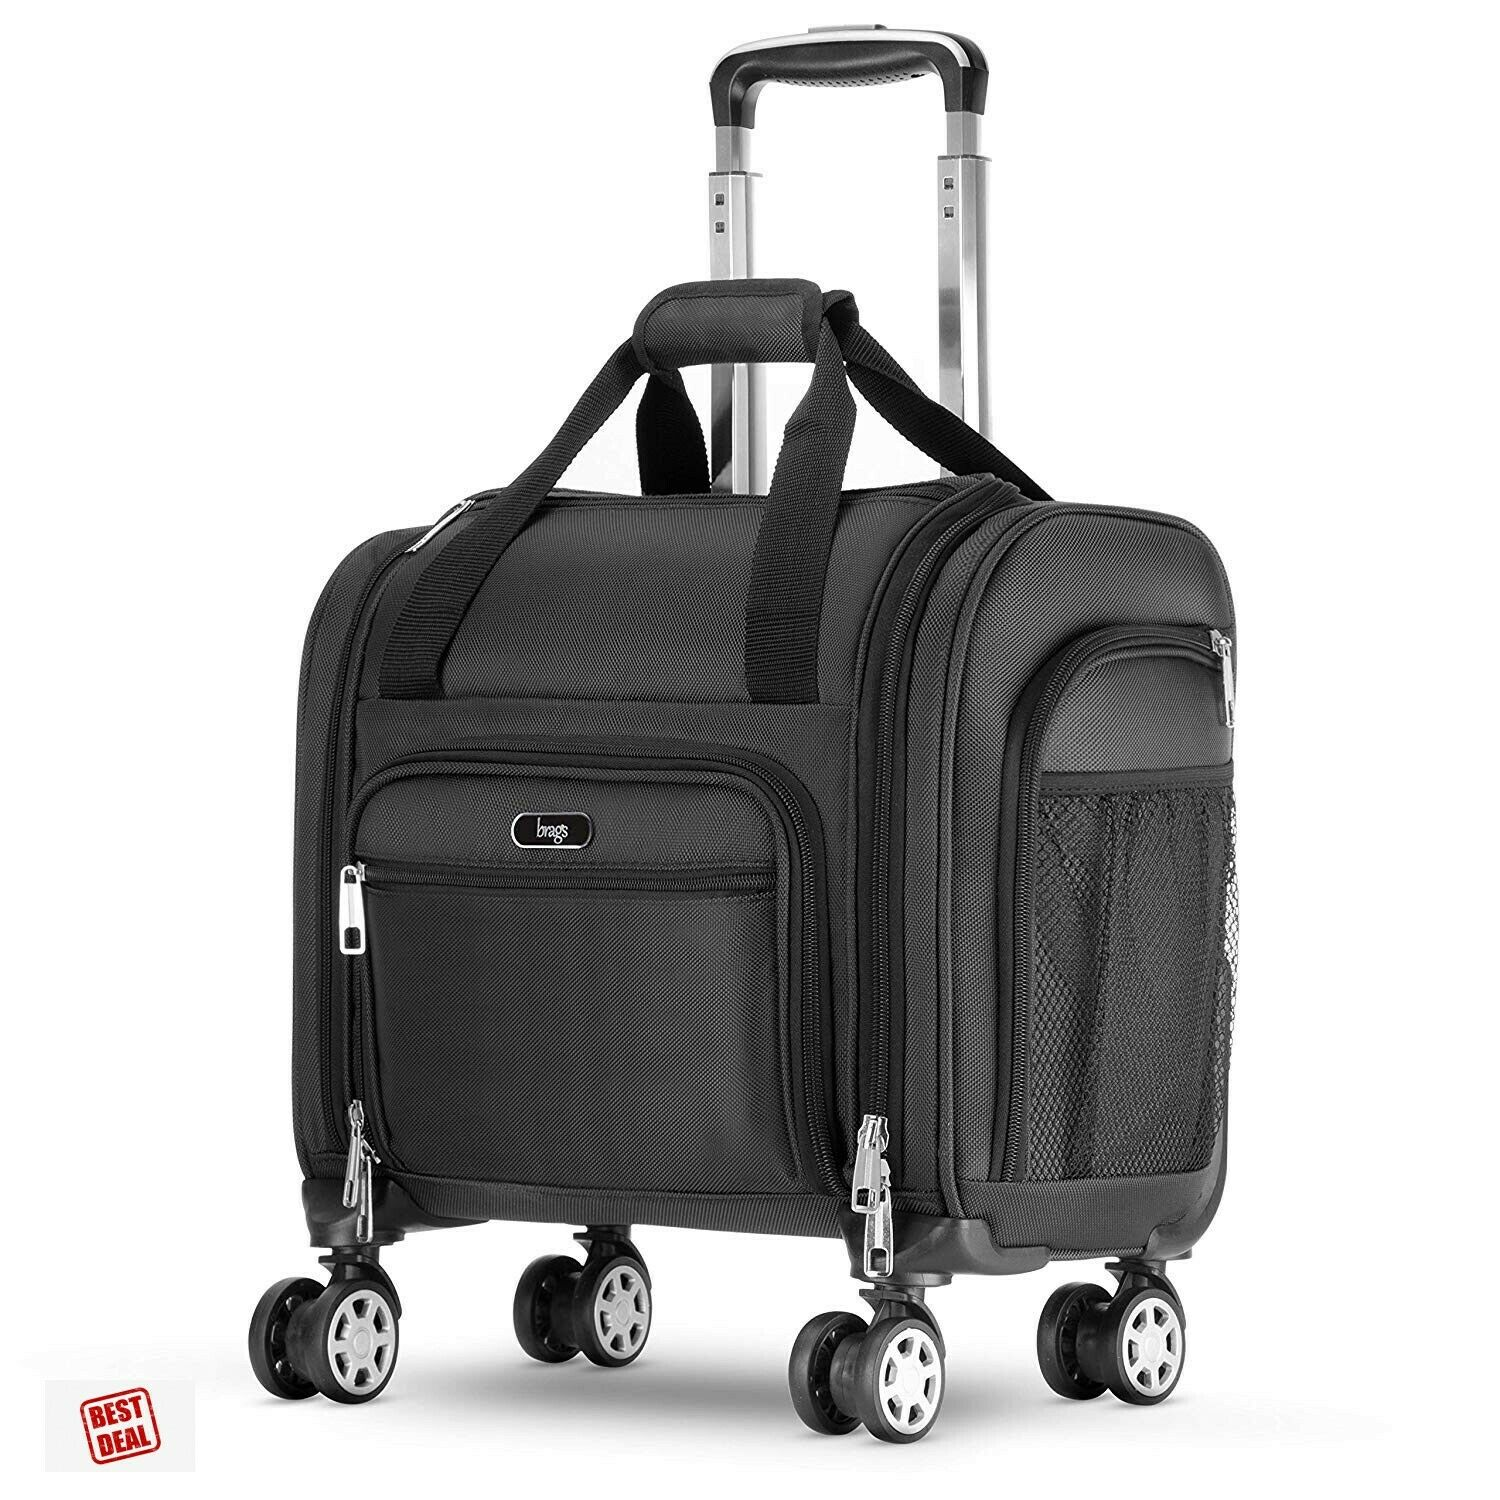 Under Seat Wheeled Luggage Rolling Carry On Bag 4 Spinner Wh